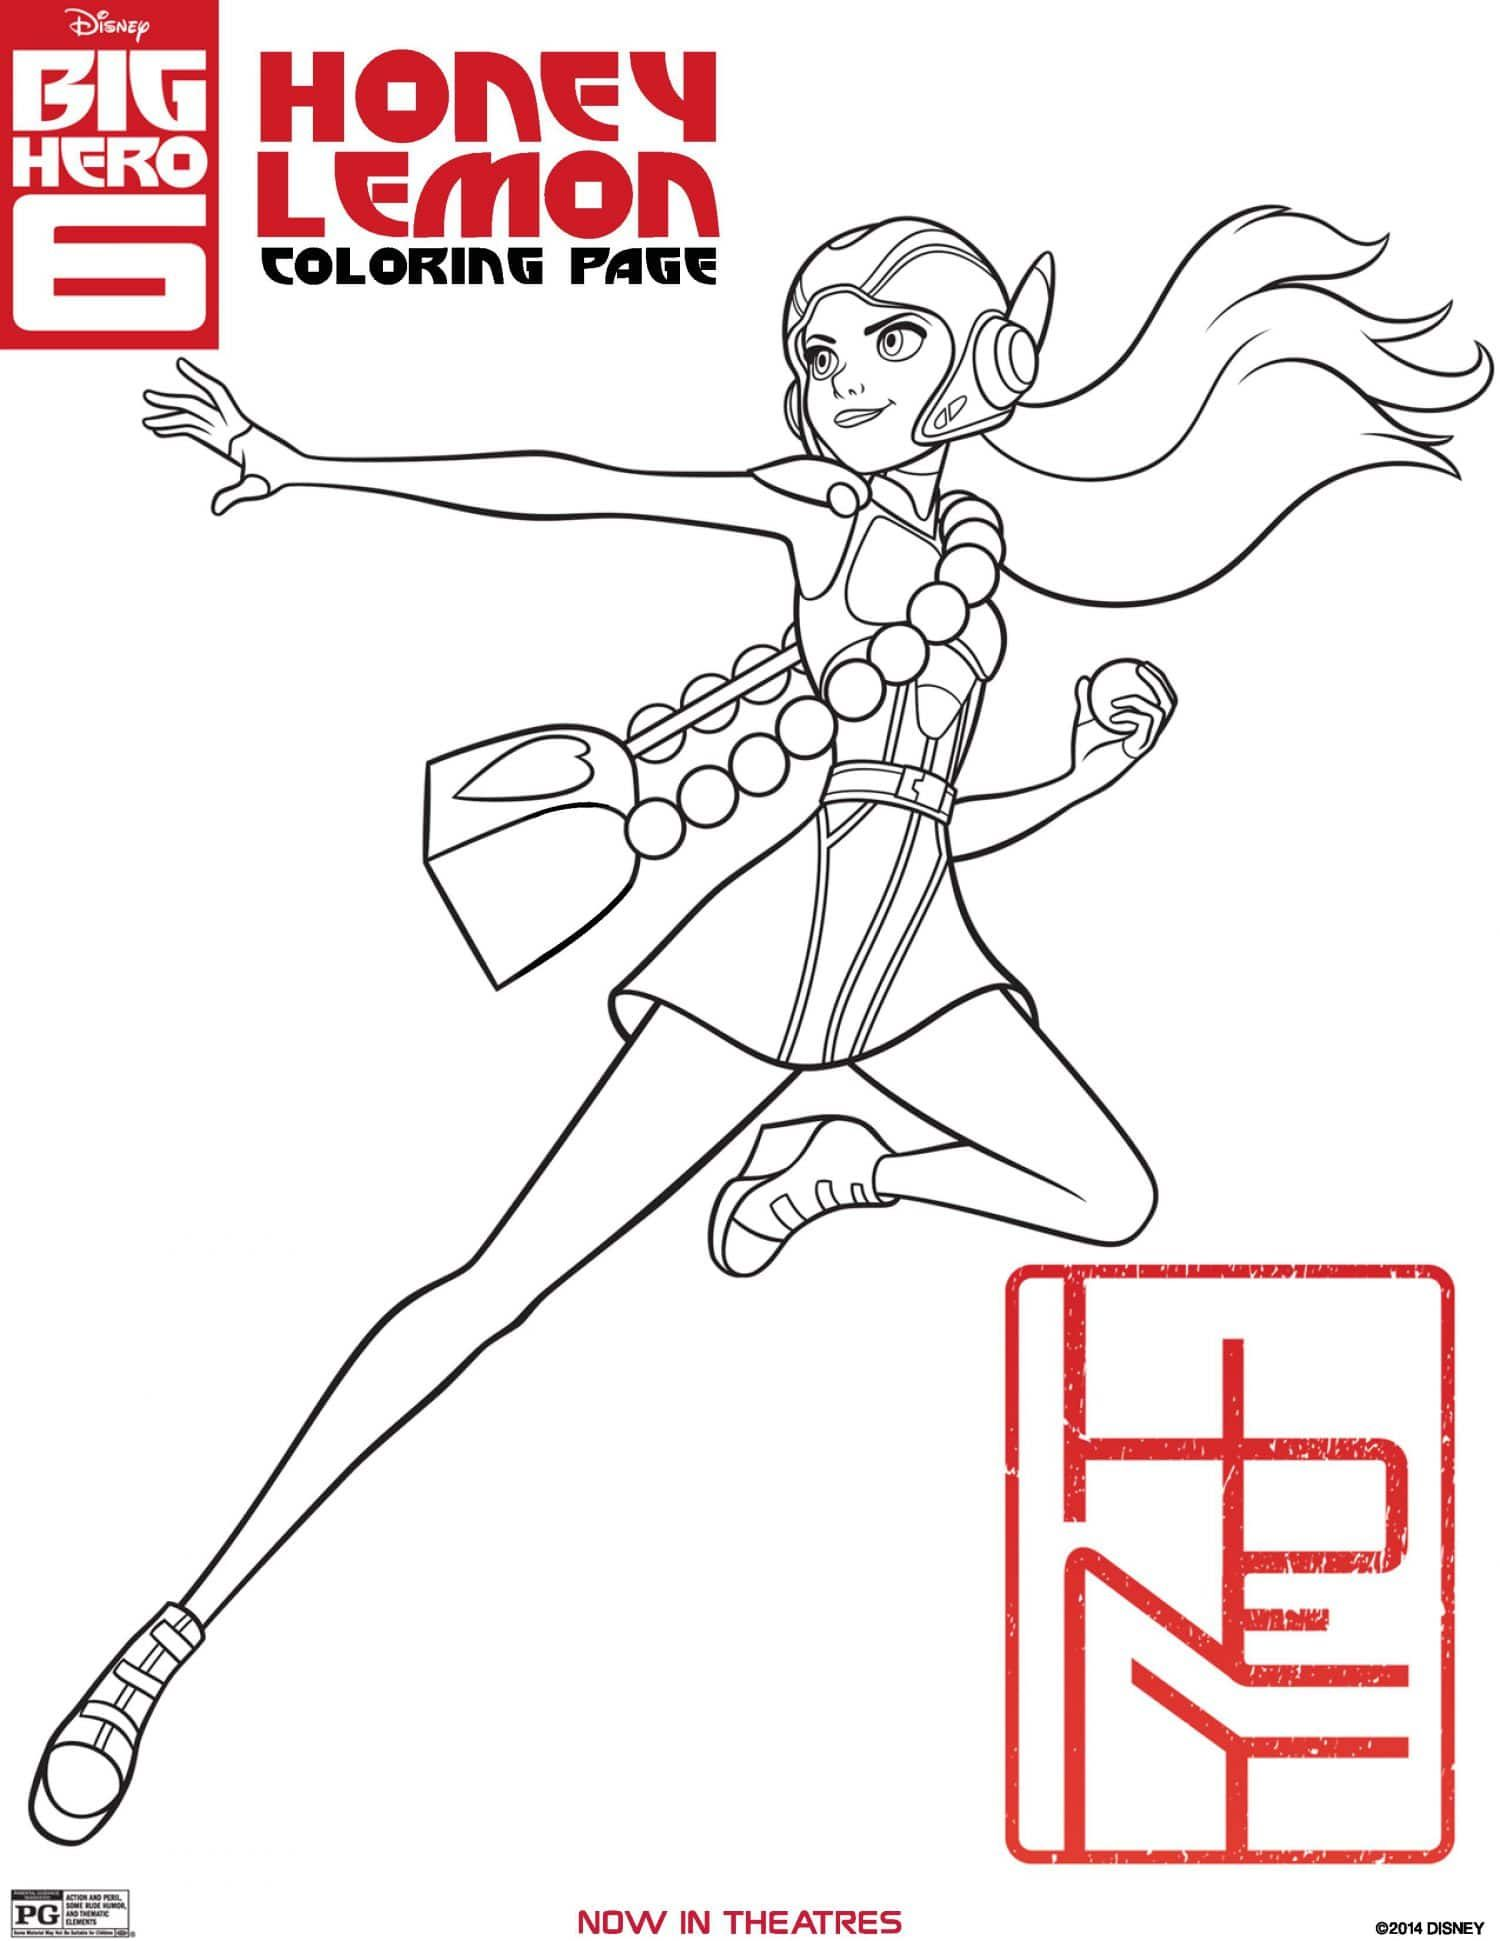 Big Hero 6 Coloring Pages Activity Sheets And Printables Big Hero Big Hero 6 Big Hero 6 Characters